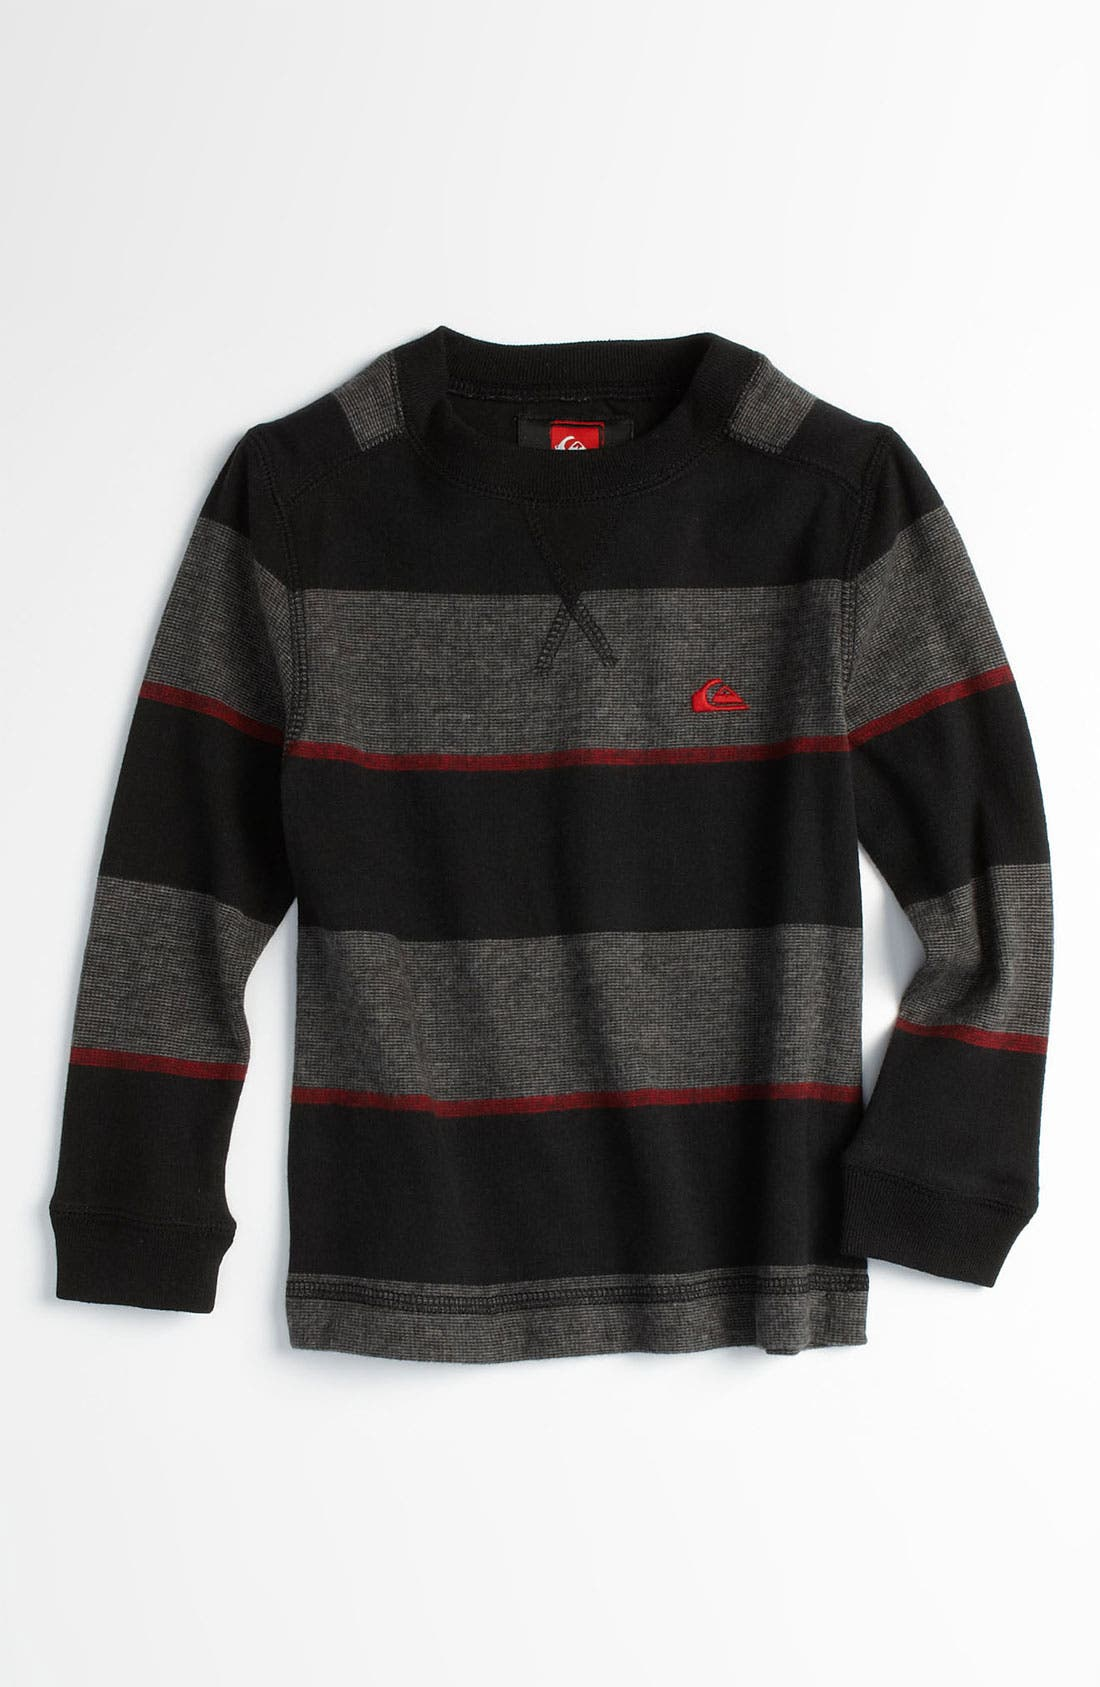 Alternate Image 1 Selected - Quiksilver 'Snit' Stripe Sweater (Toddler)